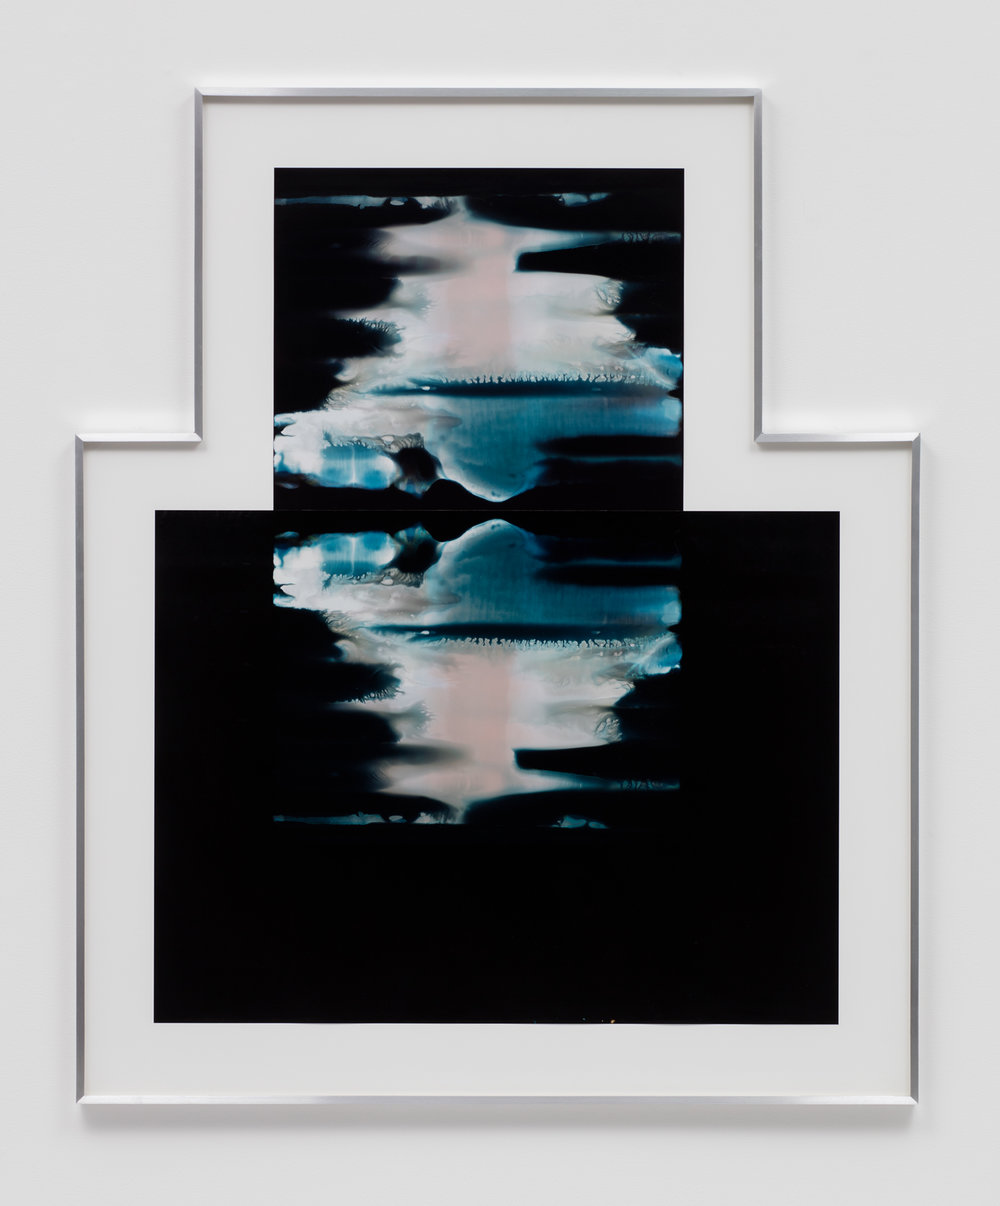 Asymmetrical Inverted RA4 Contact Print / Processor Stall (YMC: Los Angeles, California, January 29, 2018; Fujicolor Crystal Archive Super Type C, Em. No. 159-016 / Fujicolor Crystal Archive Super Type II, Em. No. 859809B217; Kodak Ektacolor RA Bleach-Fix and Replenisher; Kreonite KM IV 5225 RA4 Color Processor, Ser. No. 00092174; 02718)   2018  Color photographic paper  59 1/8 x 49 inches   Asymmetrical Inverted RA4 Contact Prints, 2018–    Equivalents, 2018